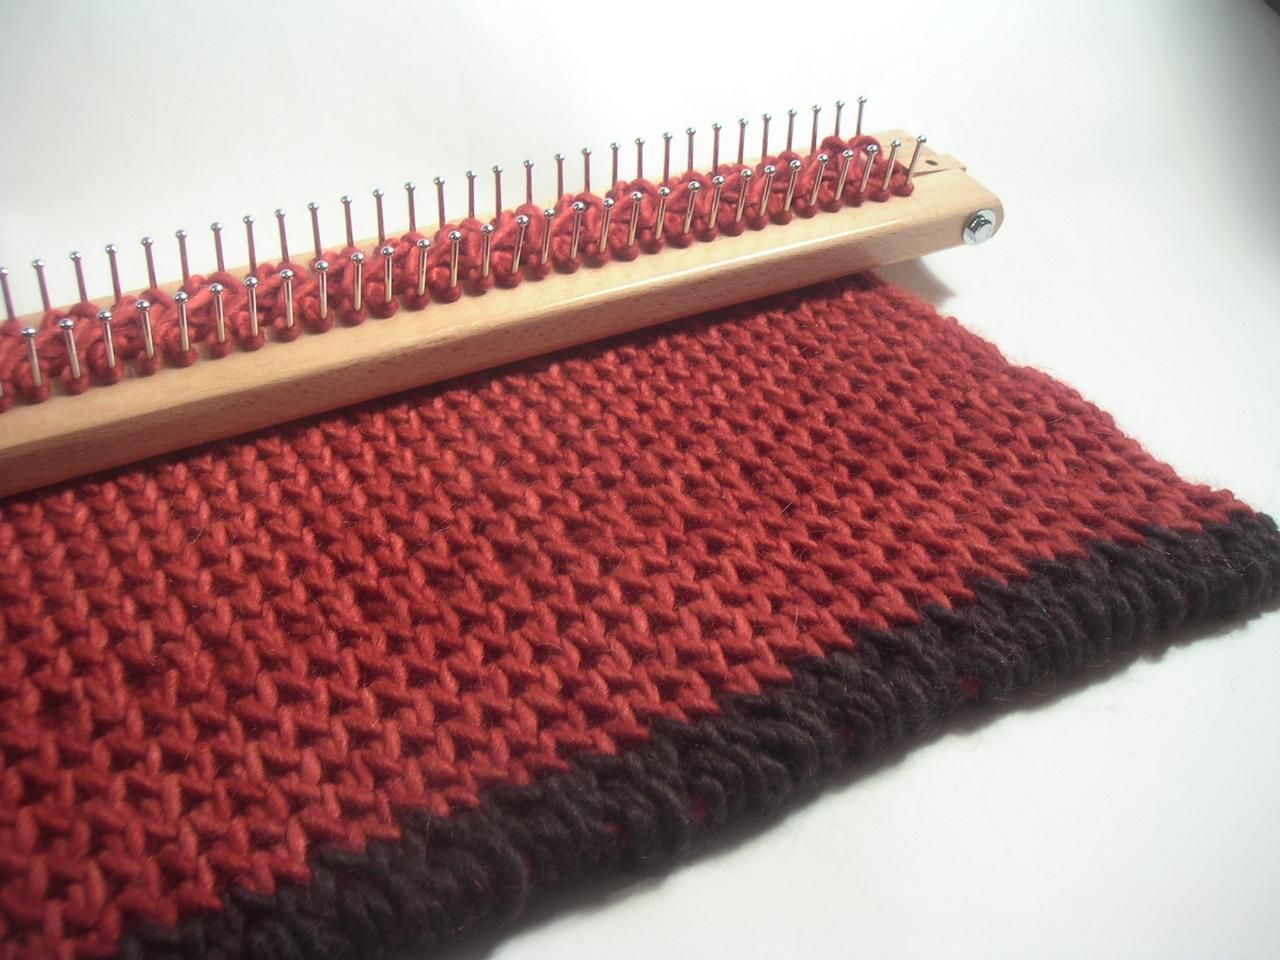 Knitting Loom Stitches : Free knitting board patterns with the new heavy duty